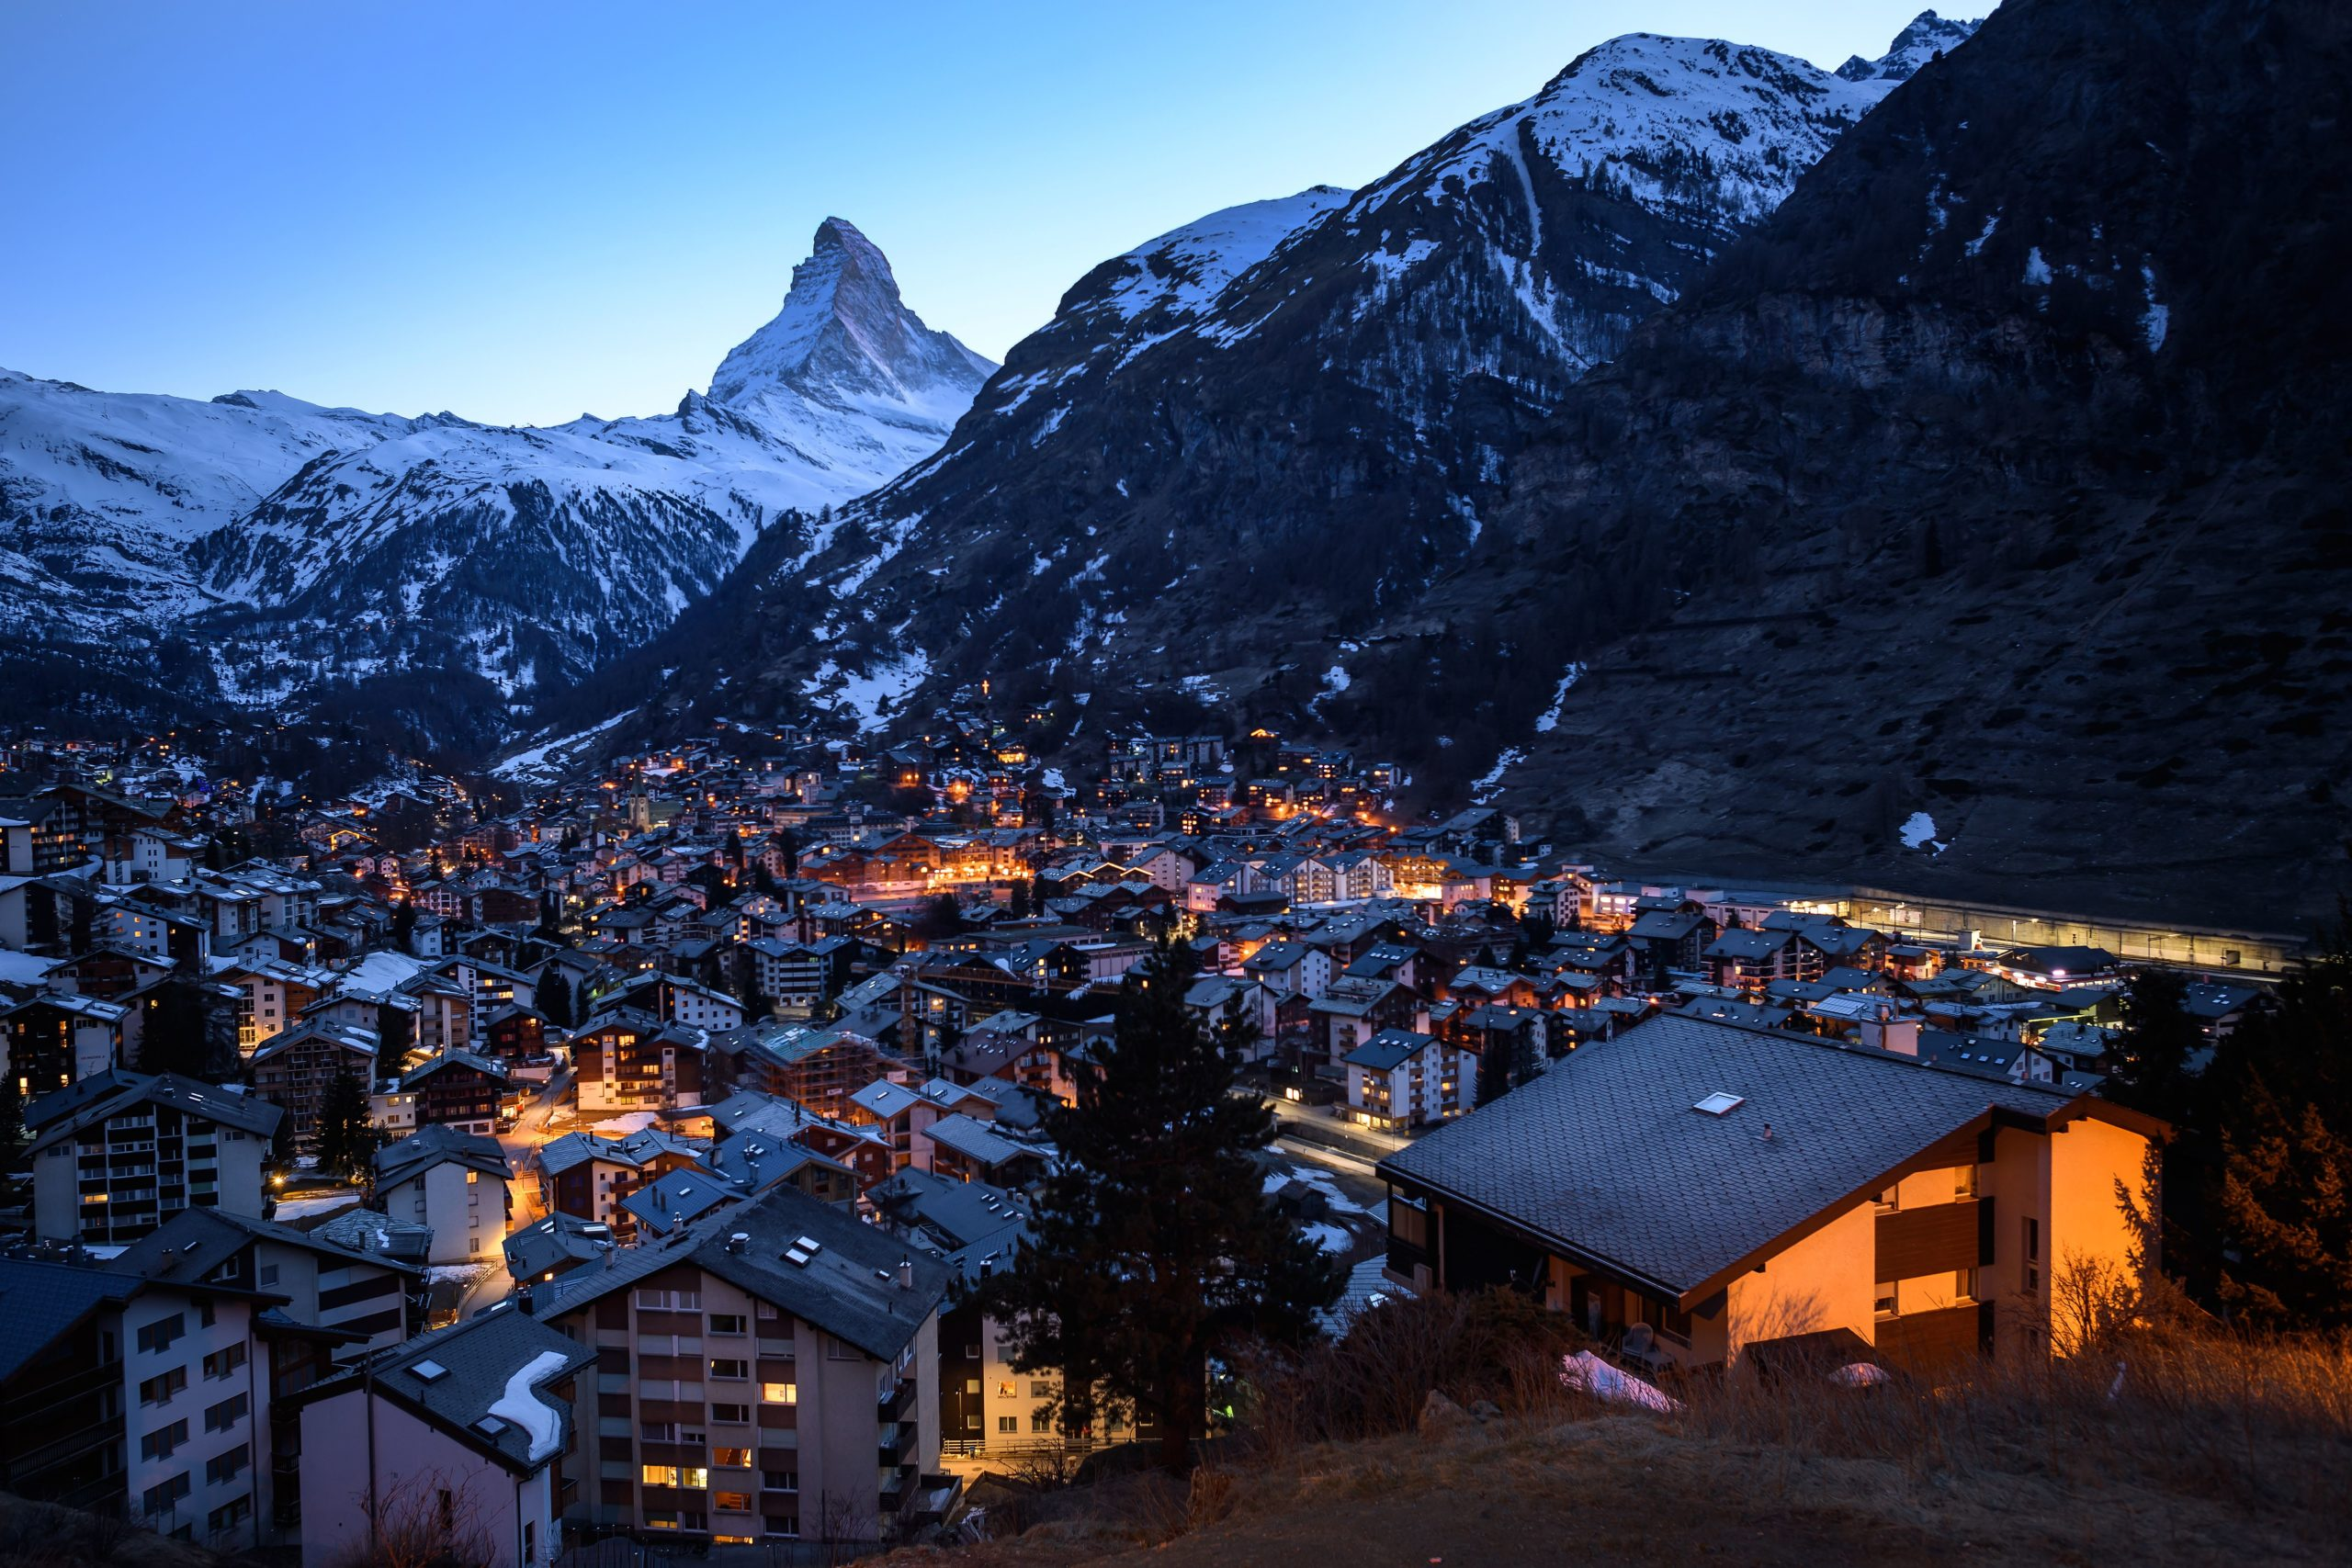 A picture taken on April 1, 2020 from the Swiss alpine resort of Zermatt shows in silhouette the iconic Matterhorn mountain located on the Italian-Swiss border that peaks at 4478 meters amid the spread of coronavirus disease (COVID-19). - The Matterhorn overlooks the ski resort of Zermatt deep down in the valley below. The normally-bustling town is devoid of tourists, hotels and holiday homes largely empty. Switzerland has shut schools, bars, restaurants and non-food shops in a bid to halt the spread of the virus. (Photo by Fabrice COFFRINI / AFP) (Photo by FABRICE COFFRINI/AFP via Getty Images)